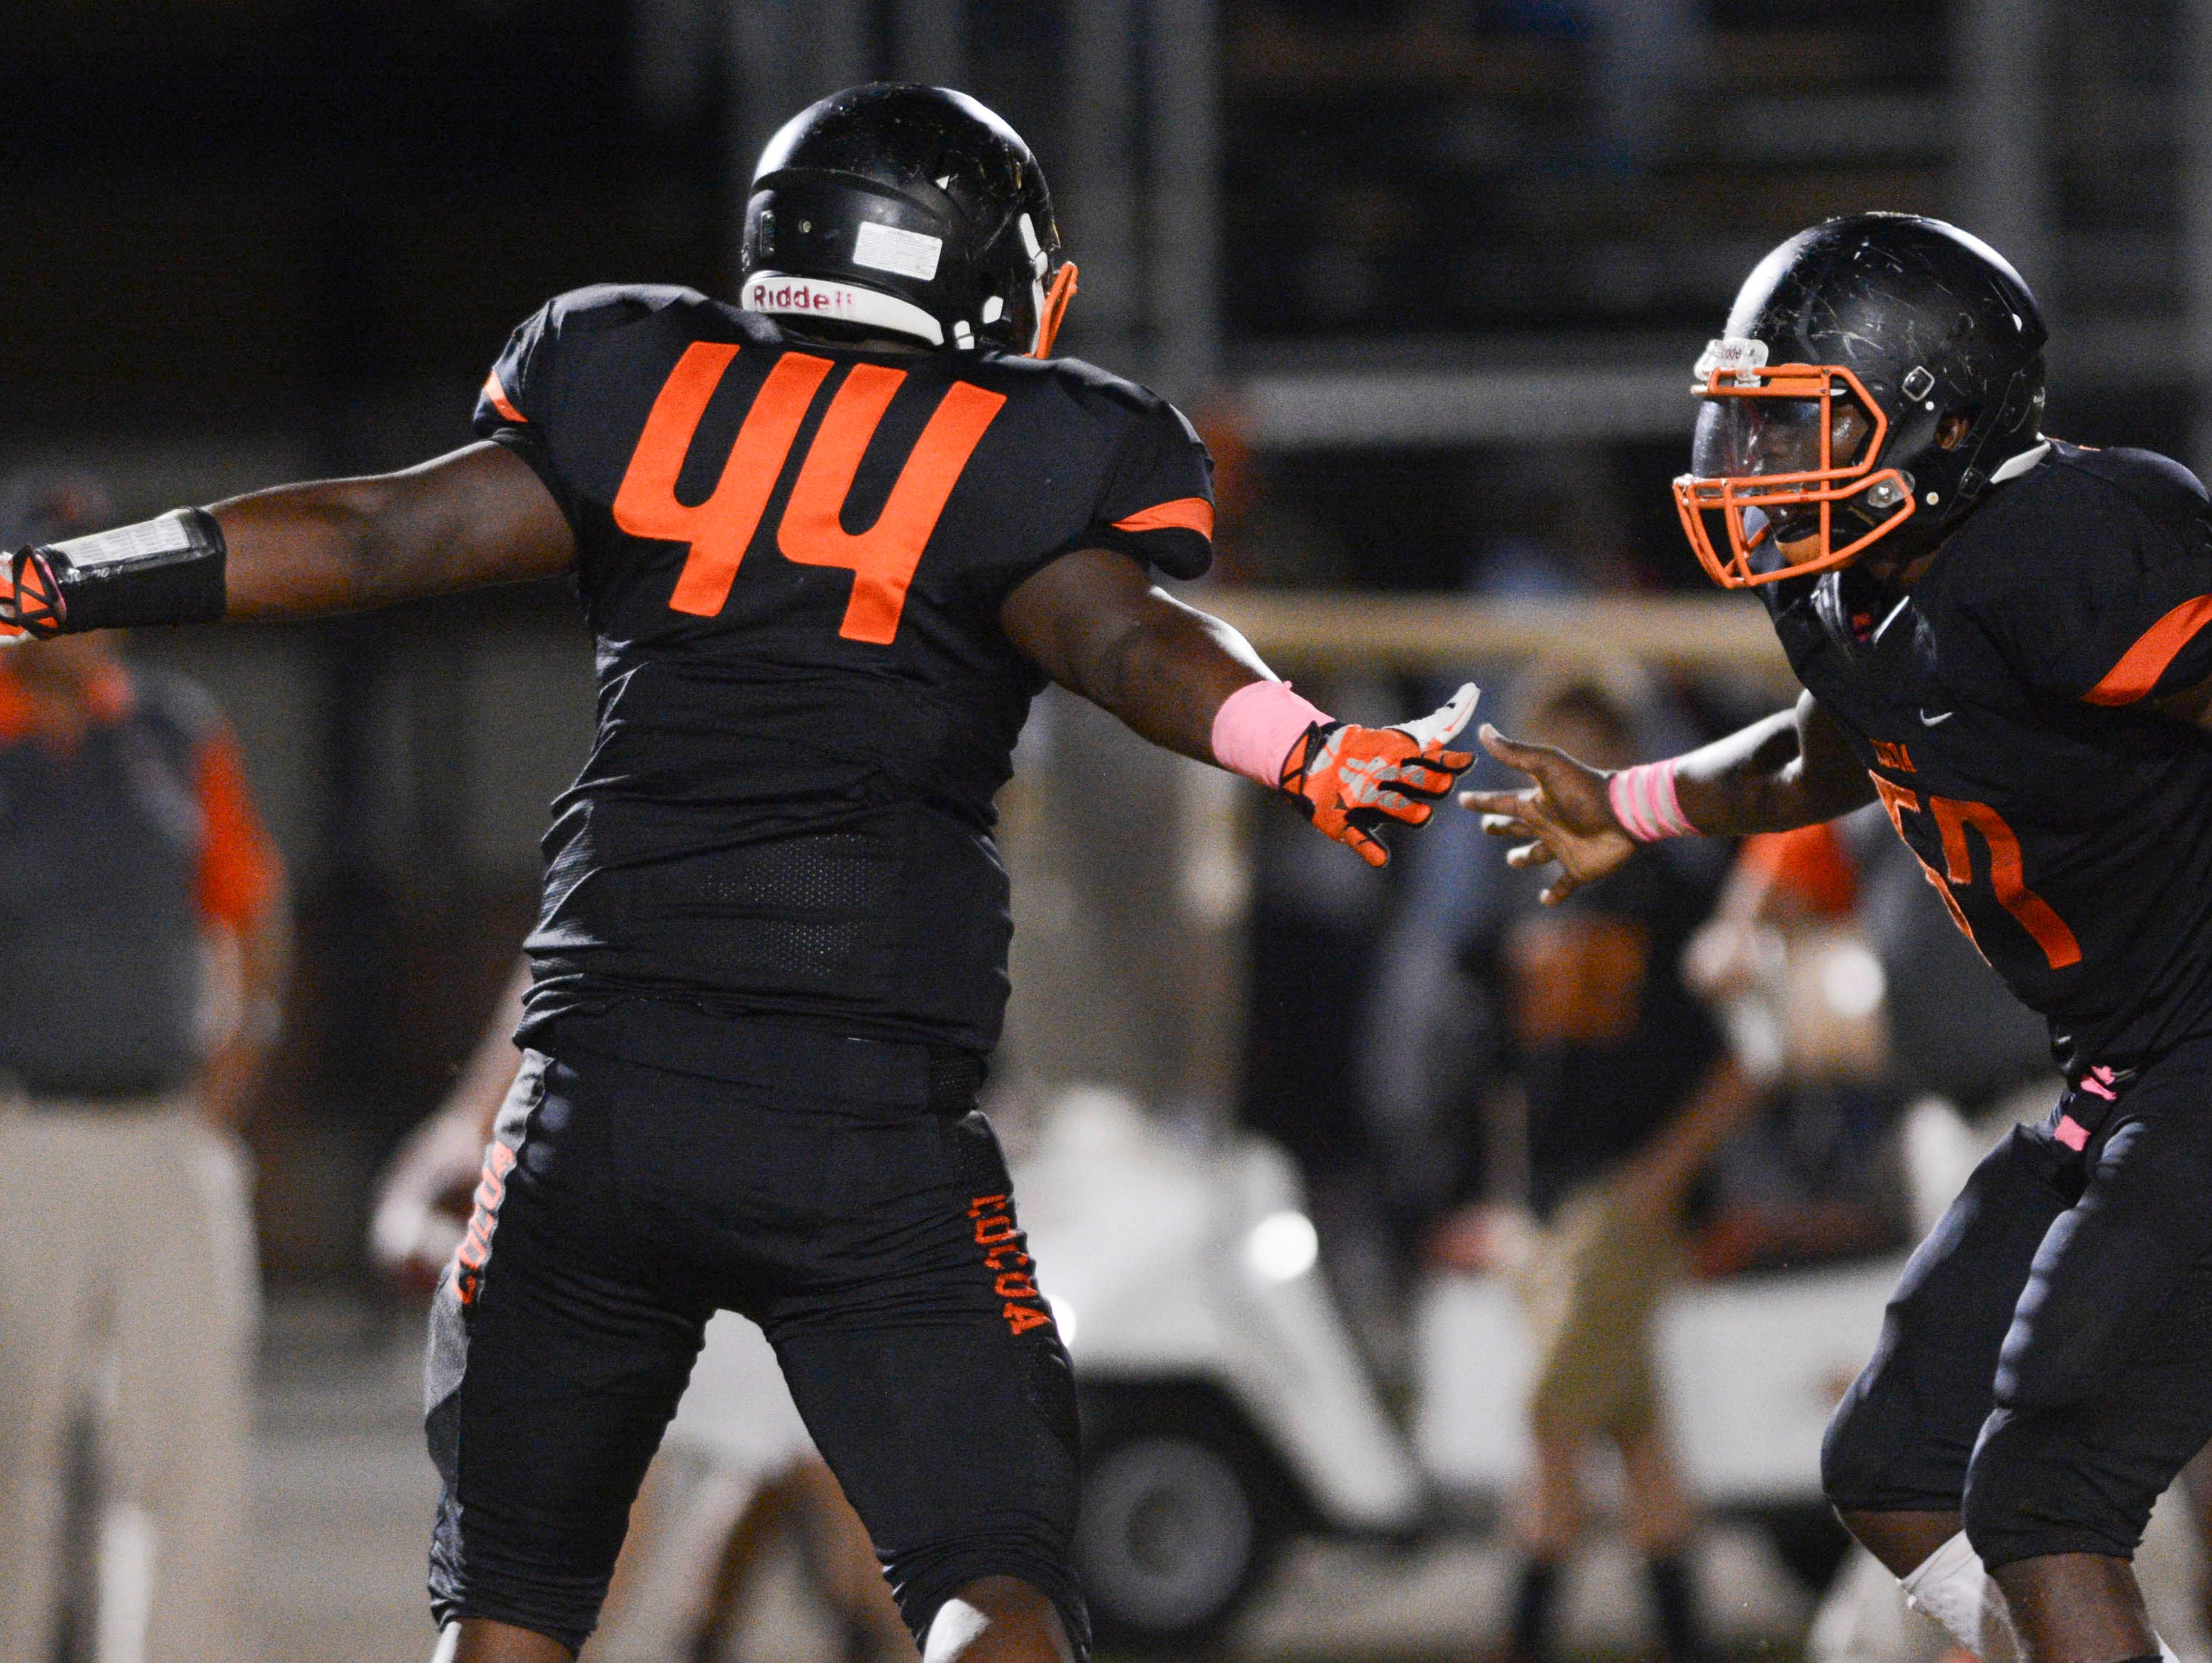 Howard Stewart of Cocoa gets congratulated by teammate Eddie Ware after he made a sack in Friday's game.